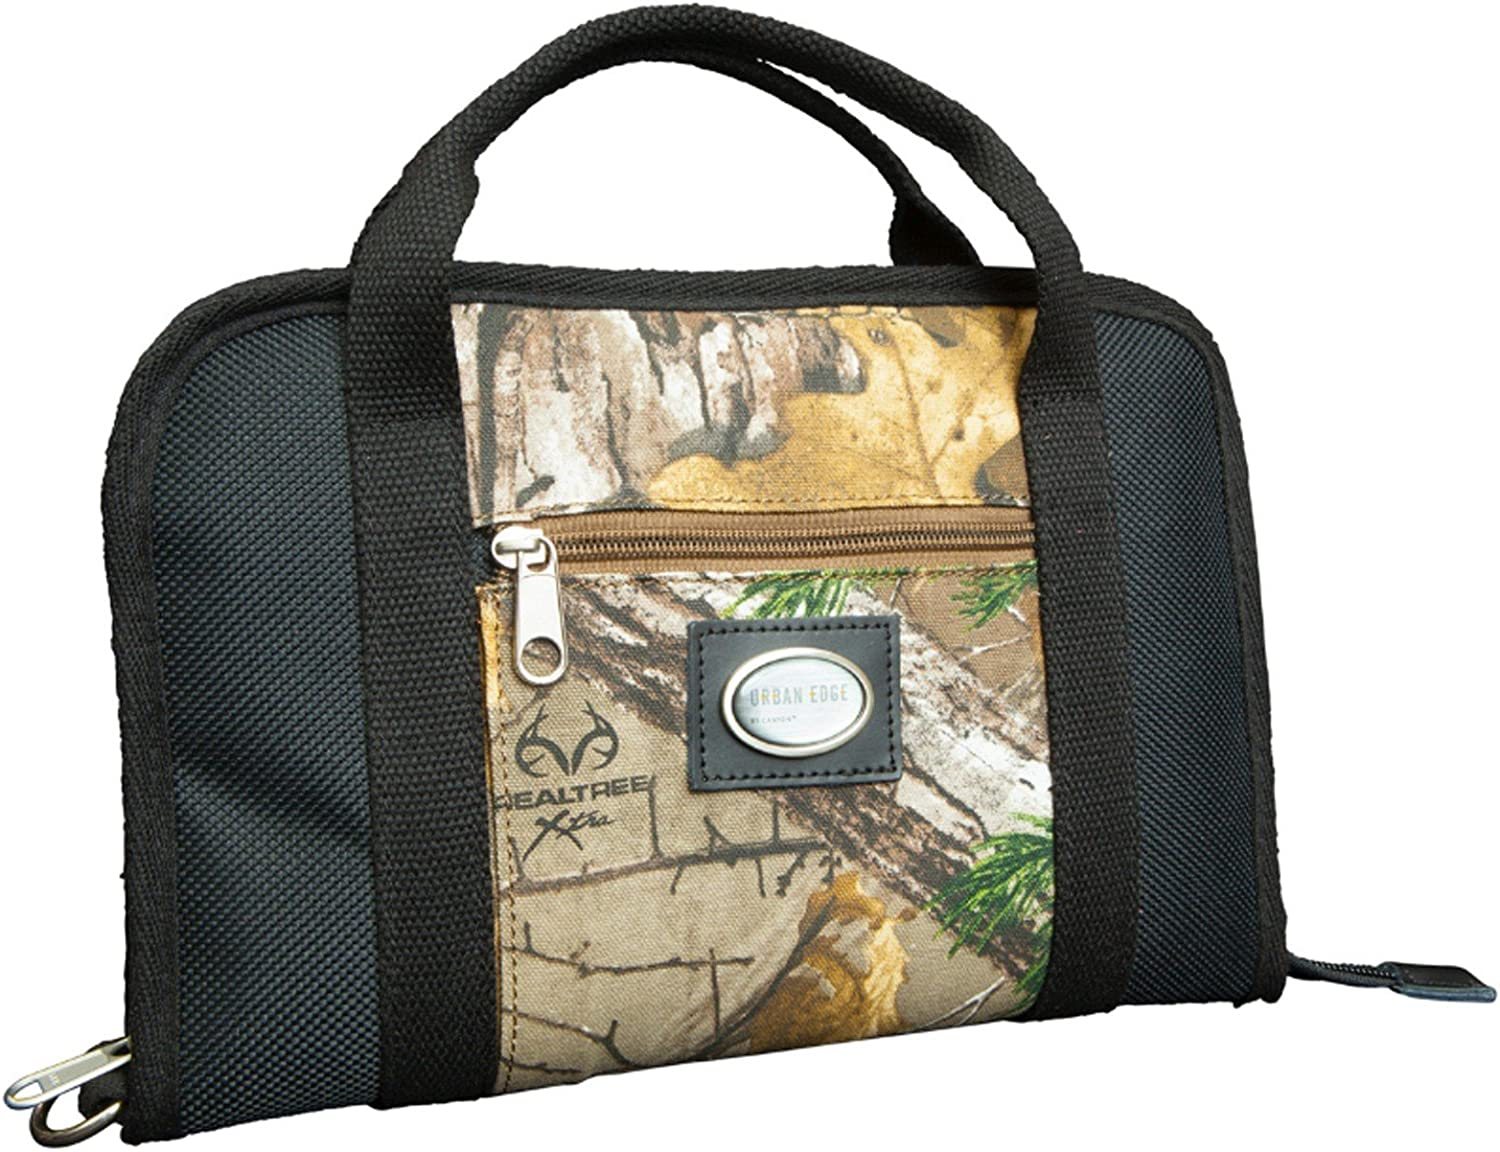 Real Tree Camo Canyon Outback Urban Edge Wyatt Realtree Pistol Case